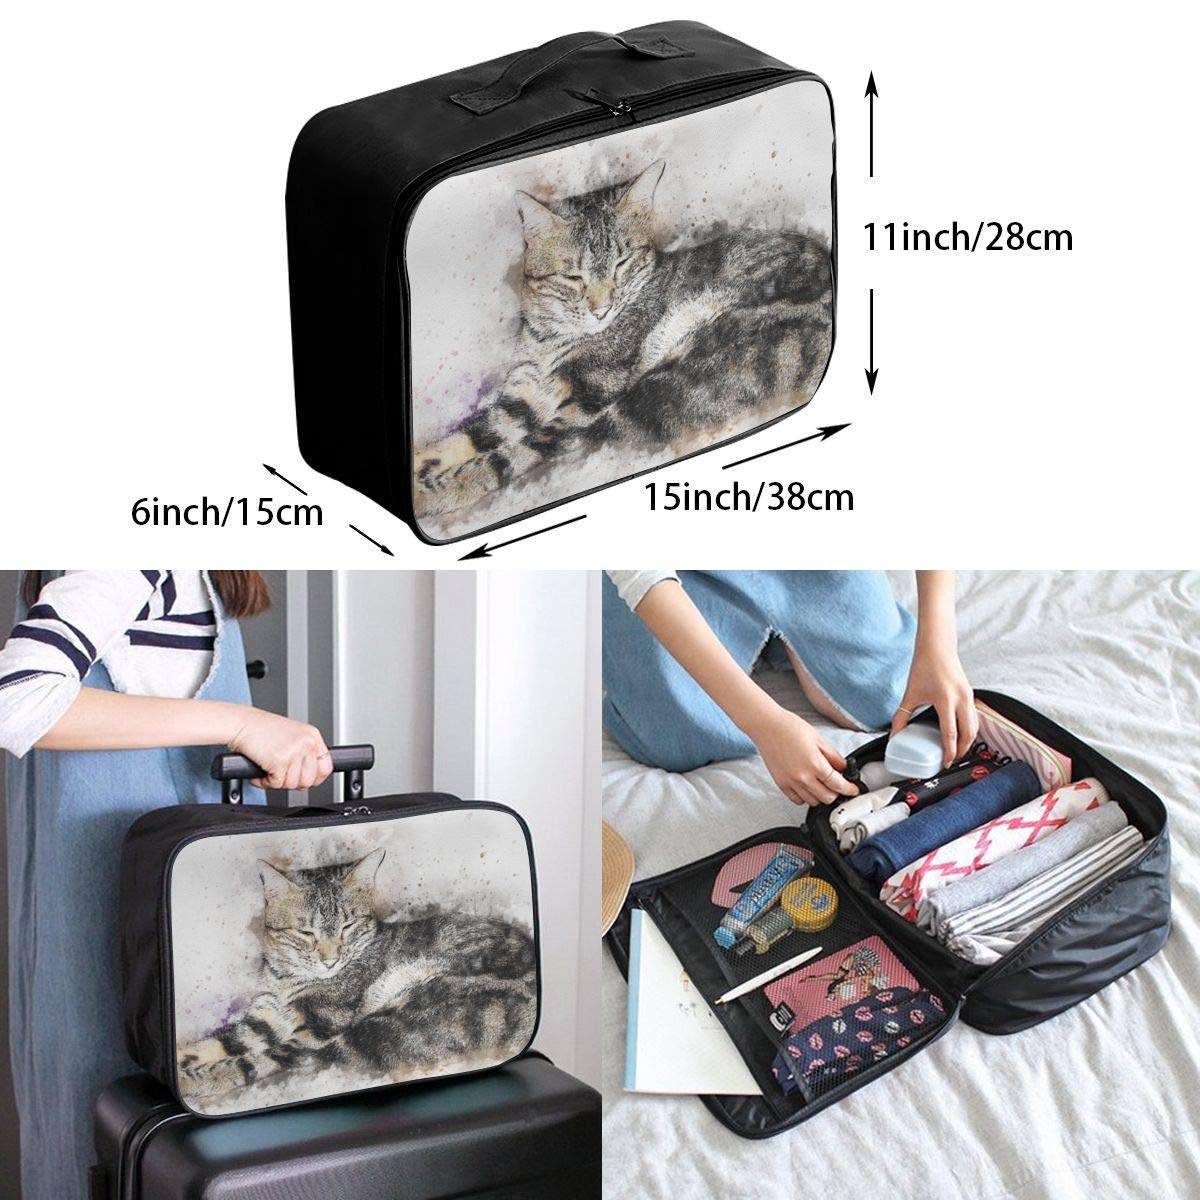 Abstract Art Cat Travel Lightweight Waterproof Foldable Storage Carry Luggage Large Capacity Portable Luggage Bag Duffel Bag